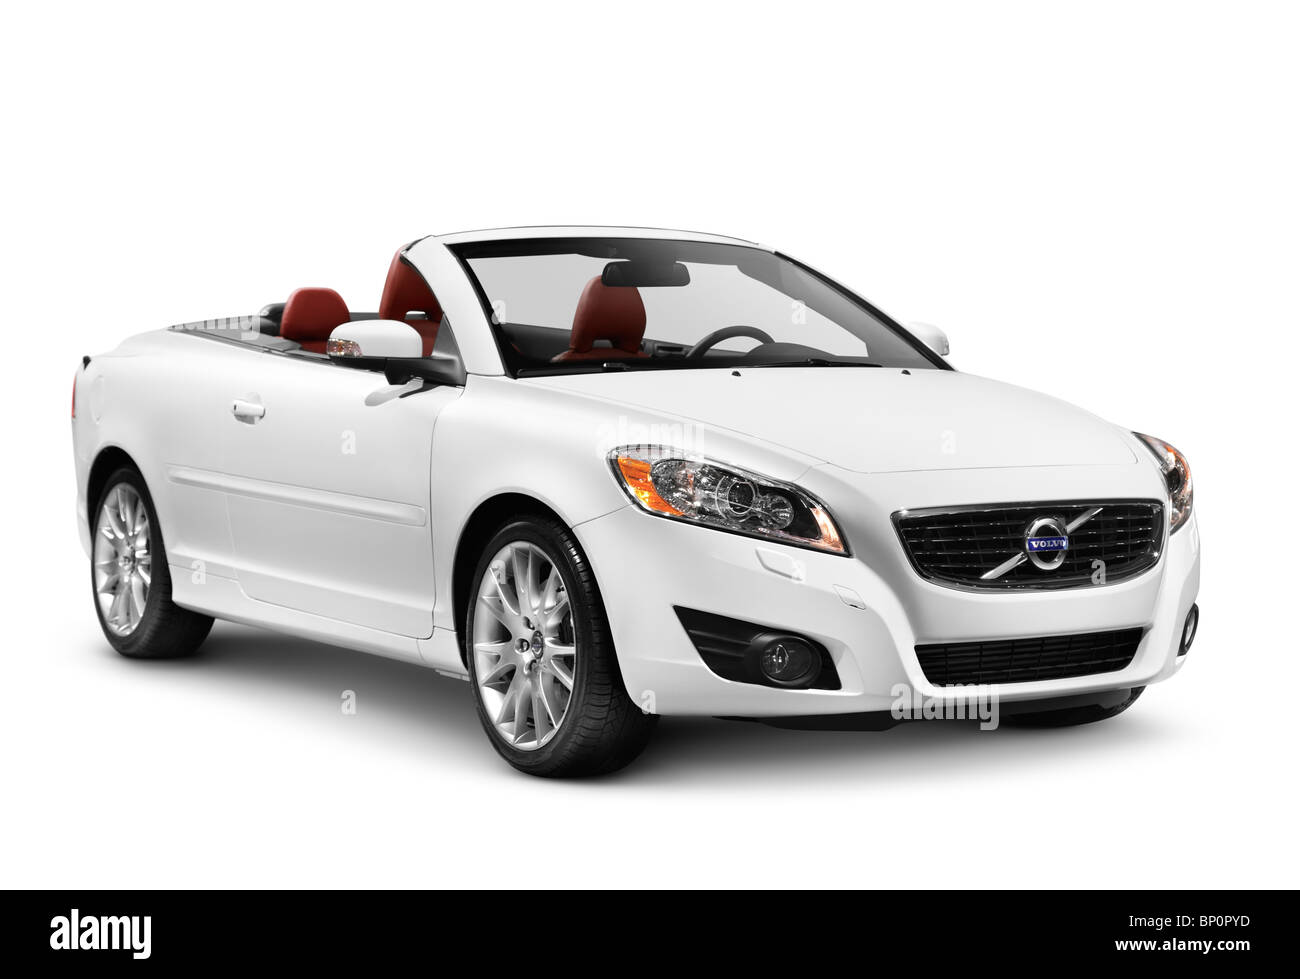 White 2011 Volvo C70 Coupe Convertible car isolated on white background with clipping path - Stock Image